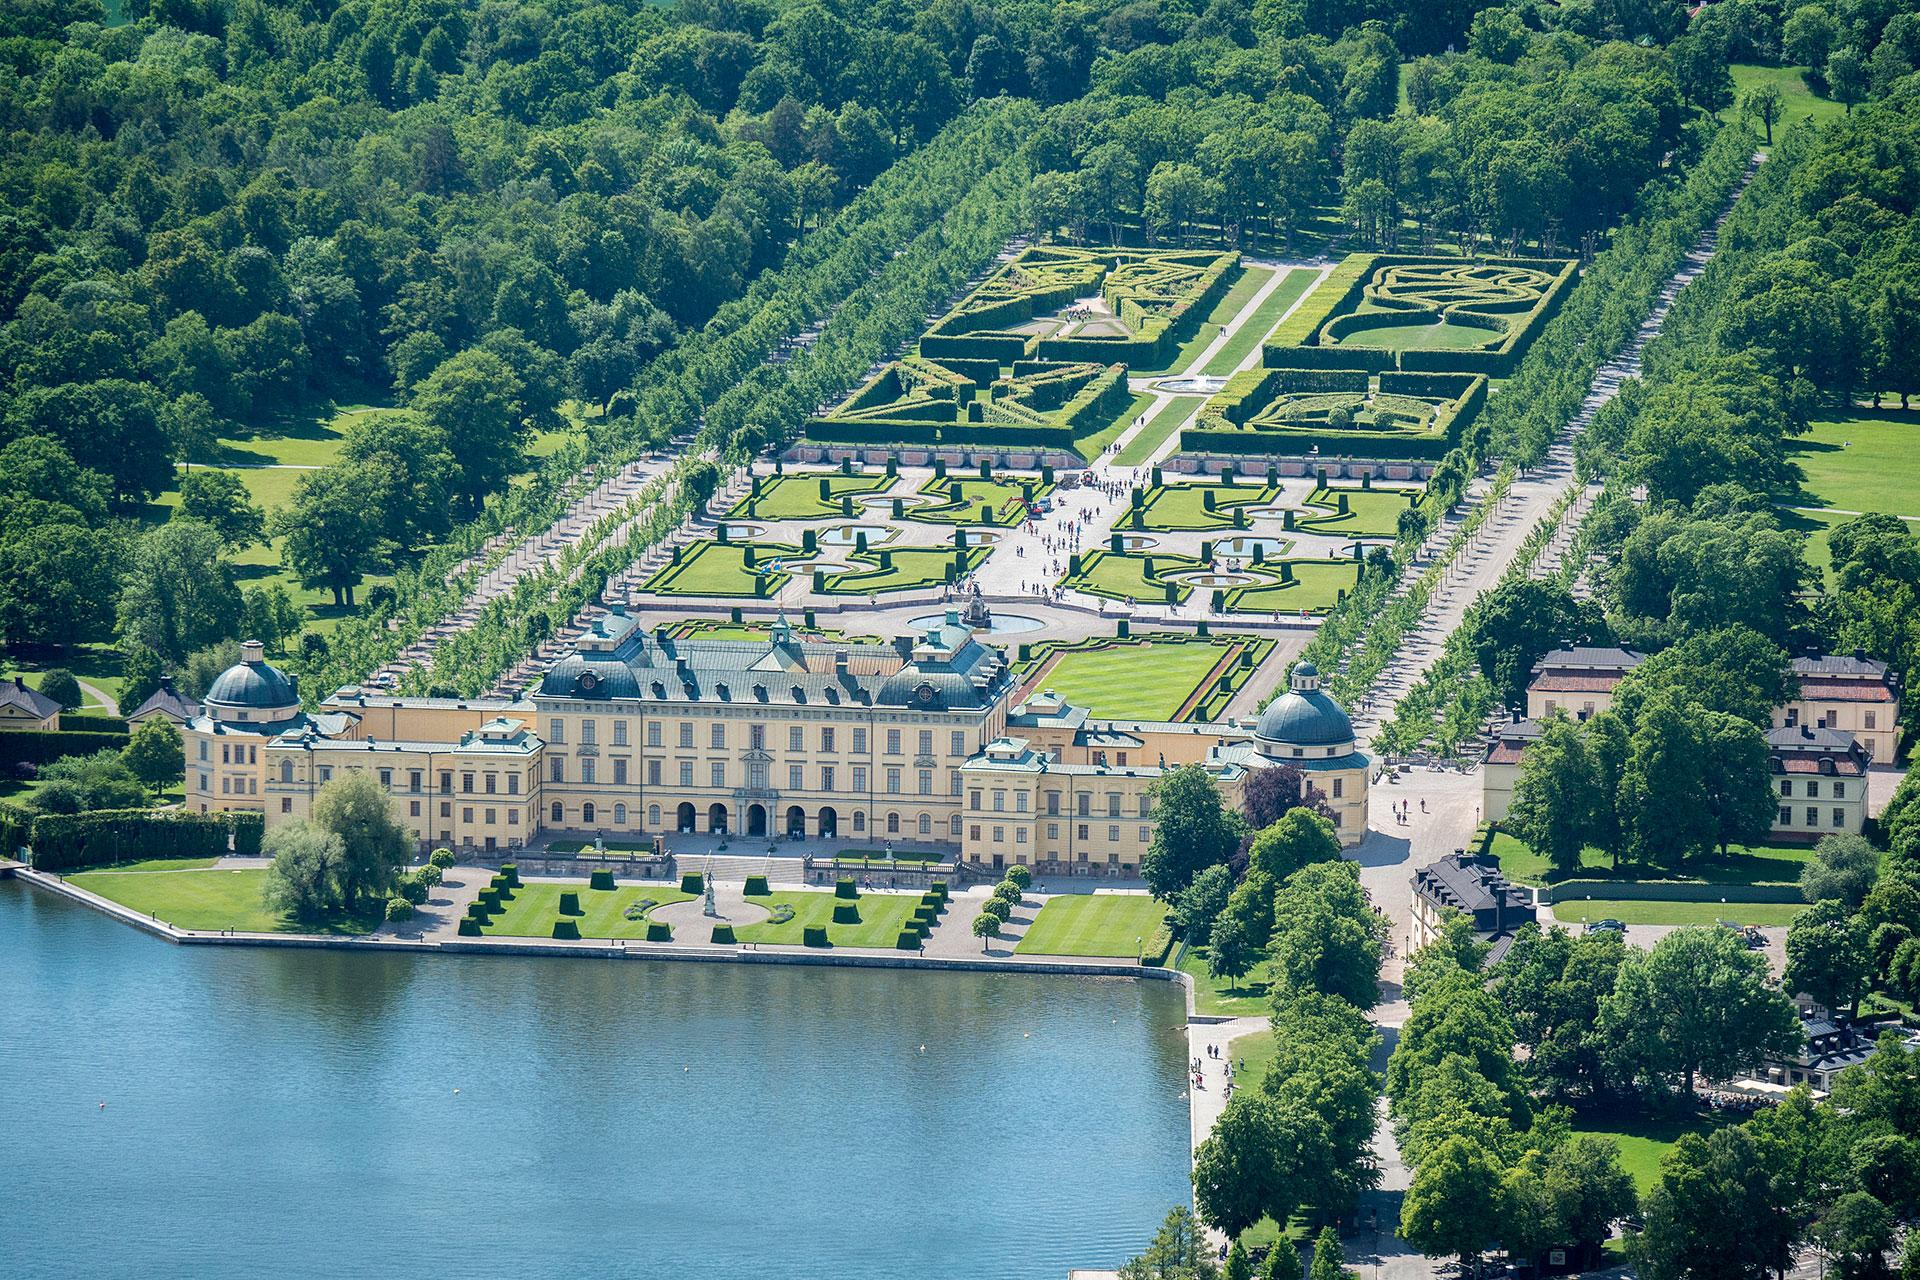 Viewing paths extend throughout the English garden and the Baroque garden, providing visitors with beautiful viewpoints and landscape vistas. – © Jonas Borg